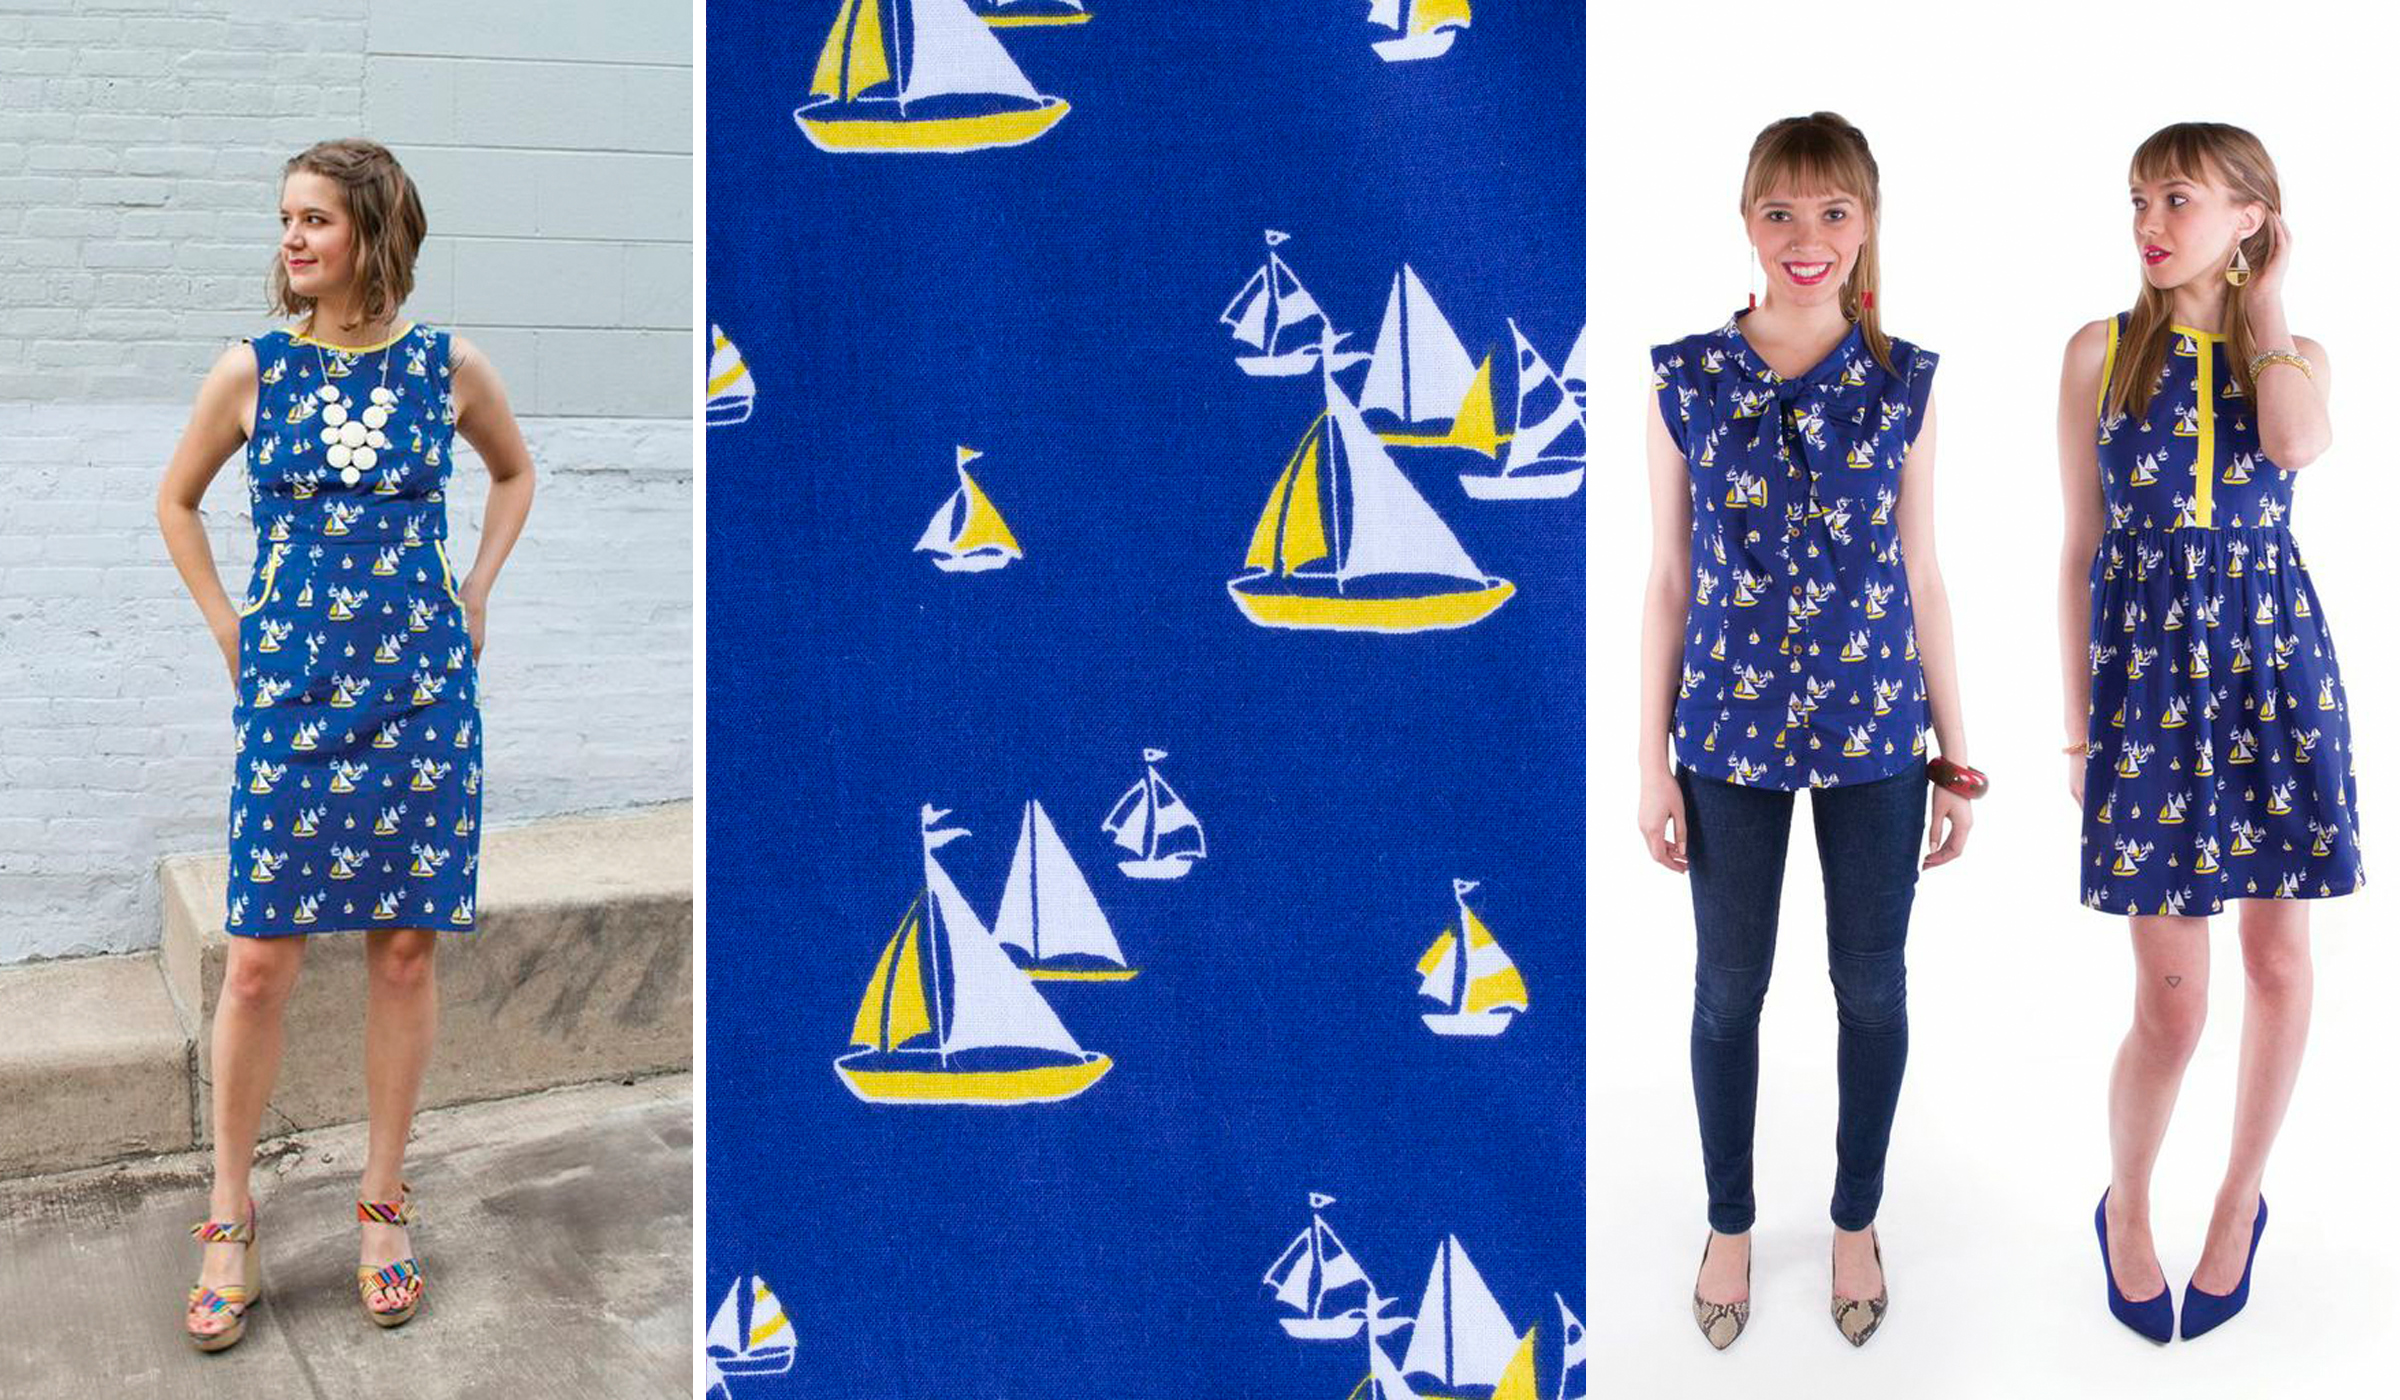 Sailboats. Textile design by Shifra Whiteman. Garments by Mata Traders.